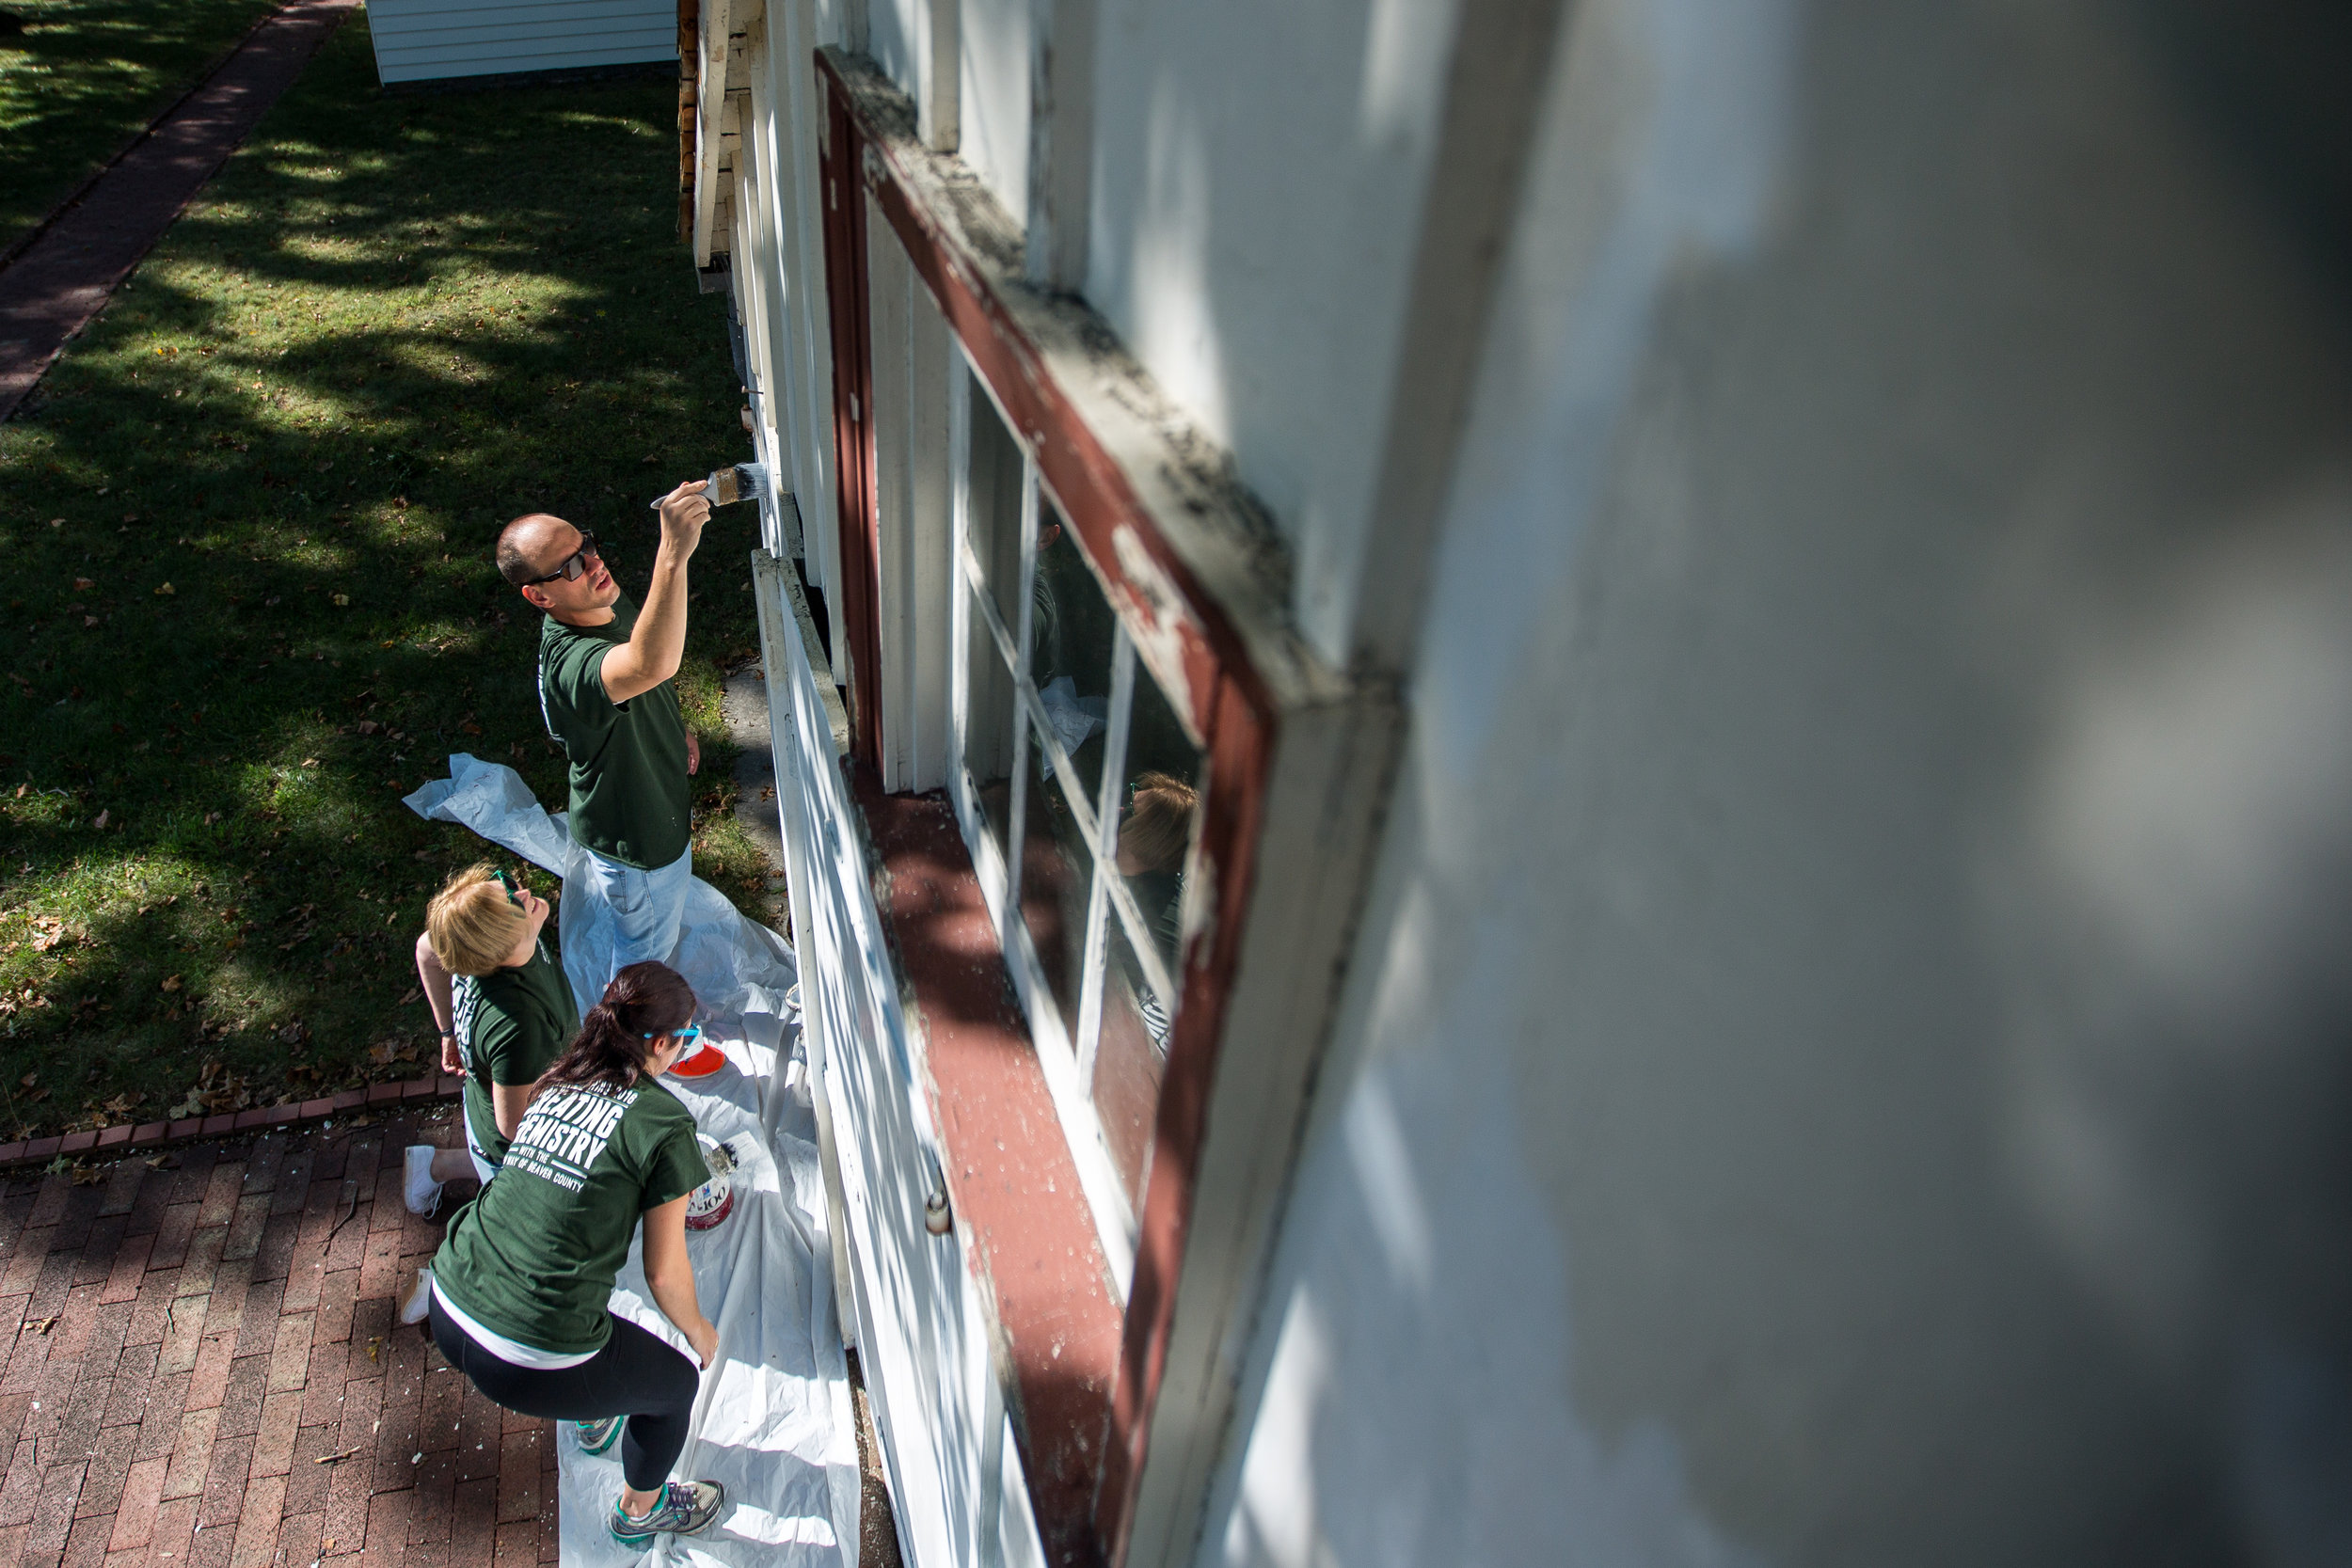 Matt Nosal, top, Susan McMullen and Jamie Telesz work on painting the side of the Blacksmith Shop at Old Economy Village on Wednesday morning. They were part of the United Way of Beaver County Day of Caring, bringing over 100 volunteers together to work at nonprofit organizations.